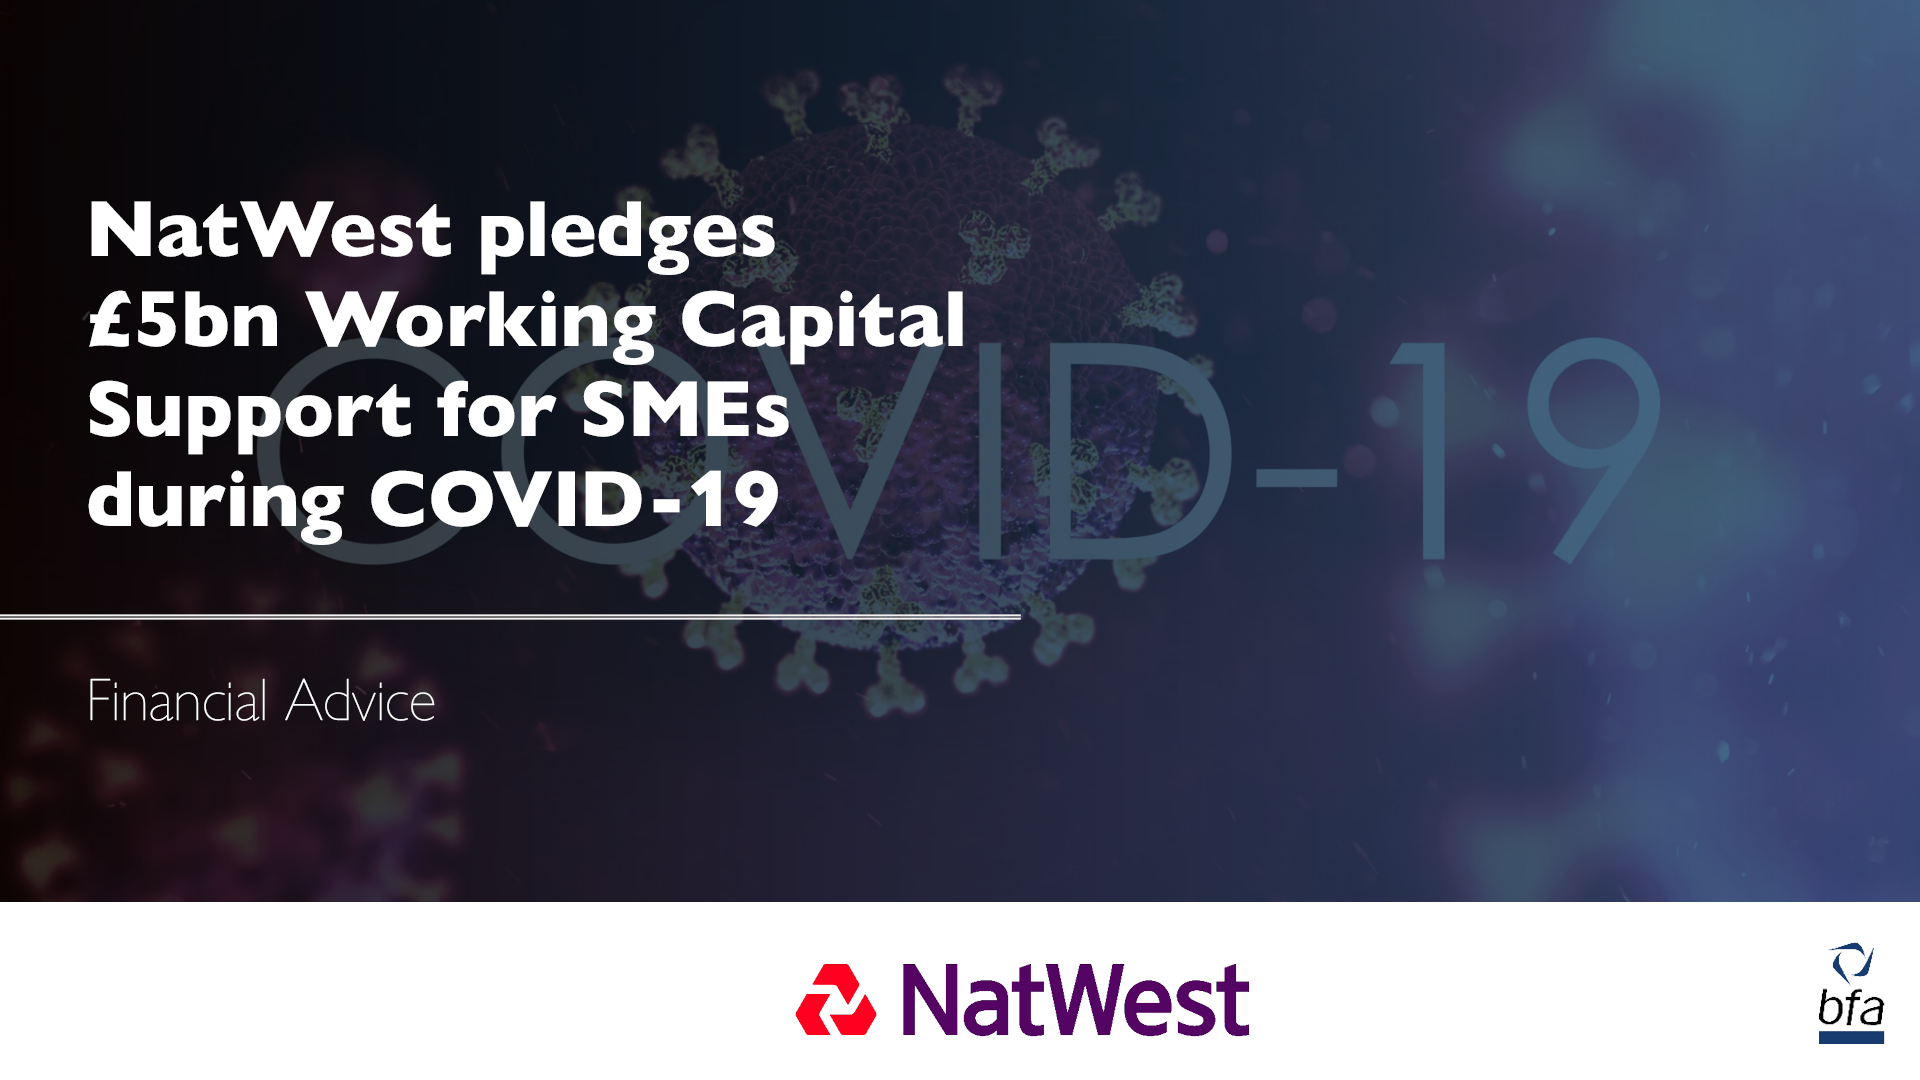 NatWest pledges £5bn Working Capital Support for SMEs during Coronavirus outbreak